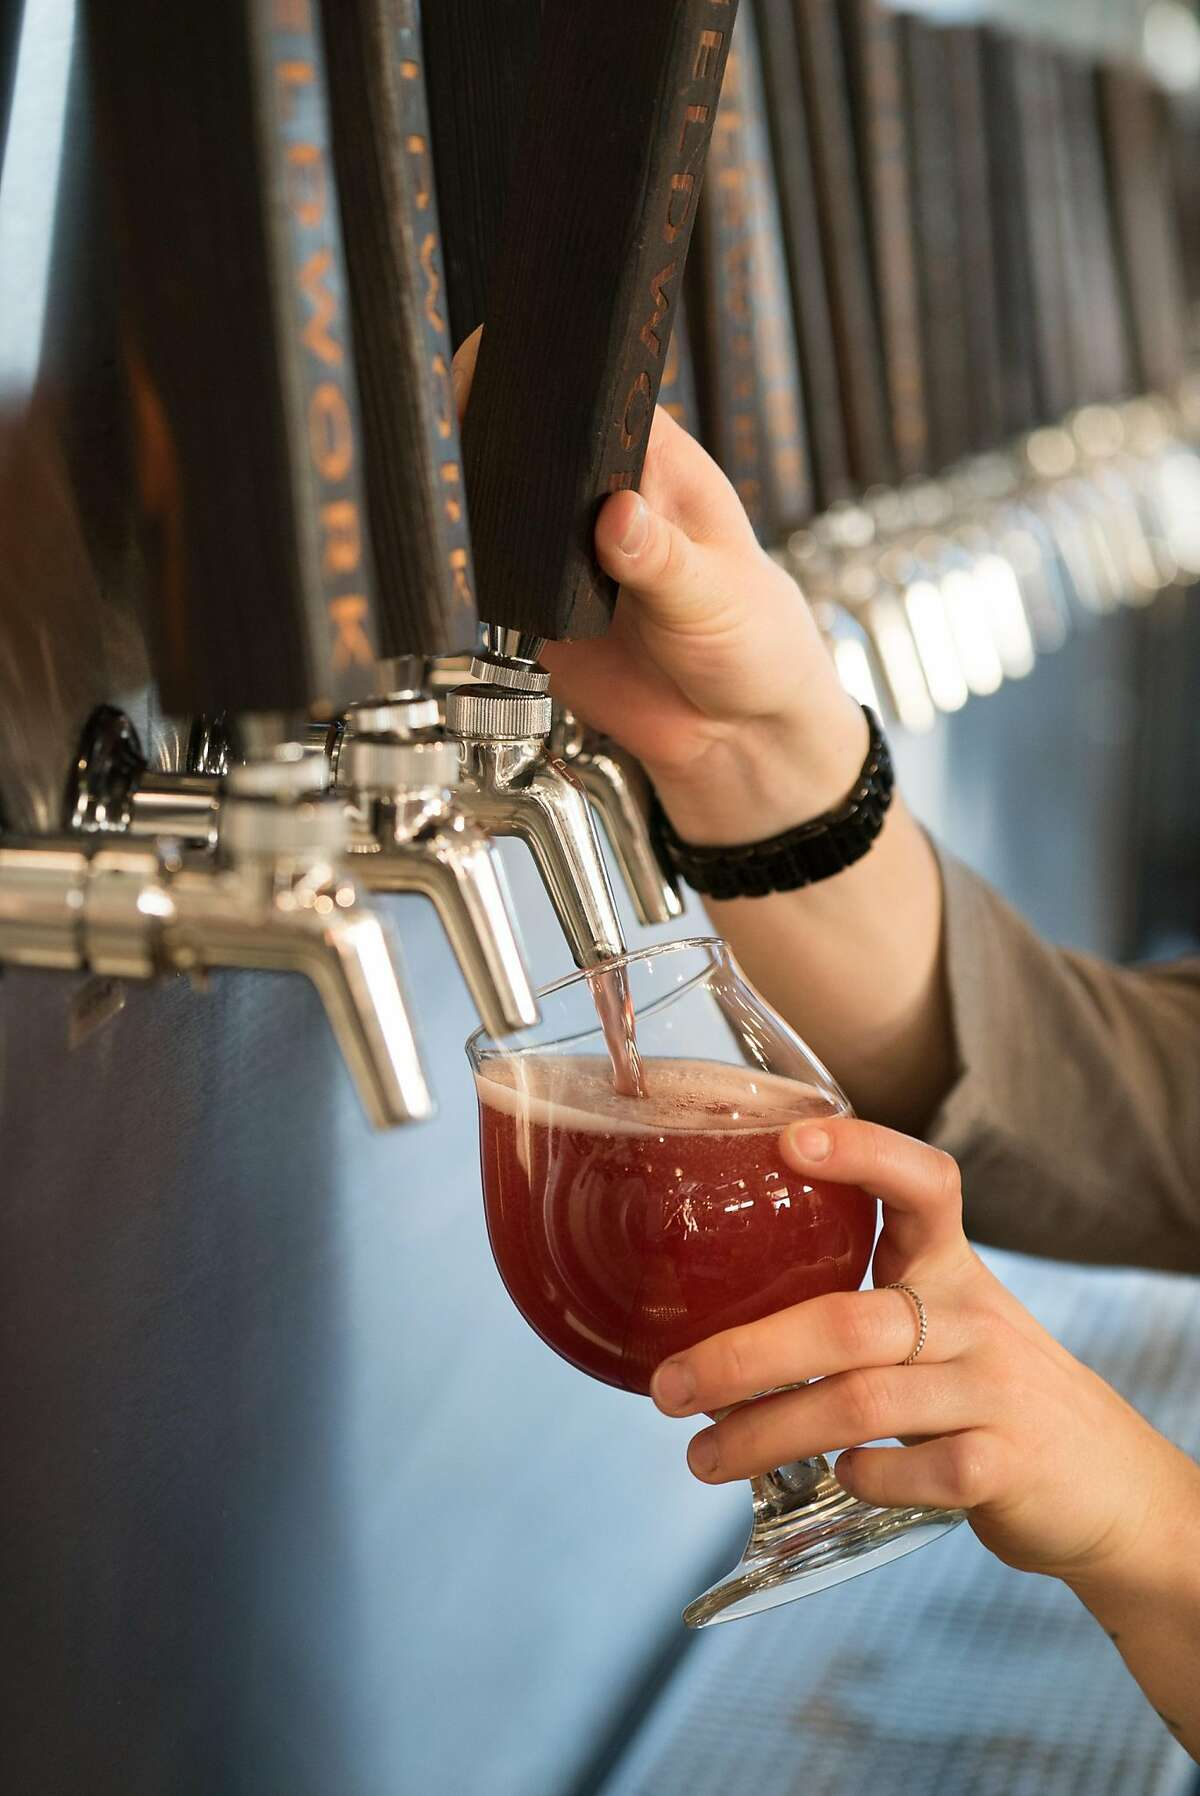 Curstin Perry pours a beer for a customer at Fieldwork inside the Oxbow Market in Napa, Calif. on Saturday, Feb. 11, 2017. Fieldwork features a variety of craft beers on tap.